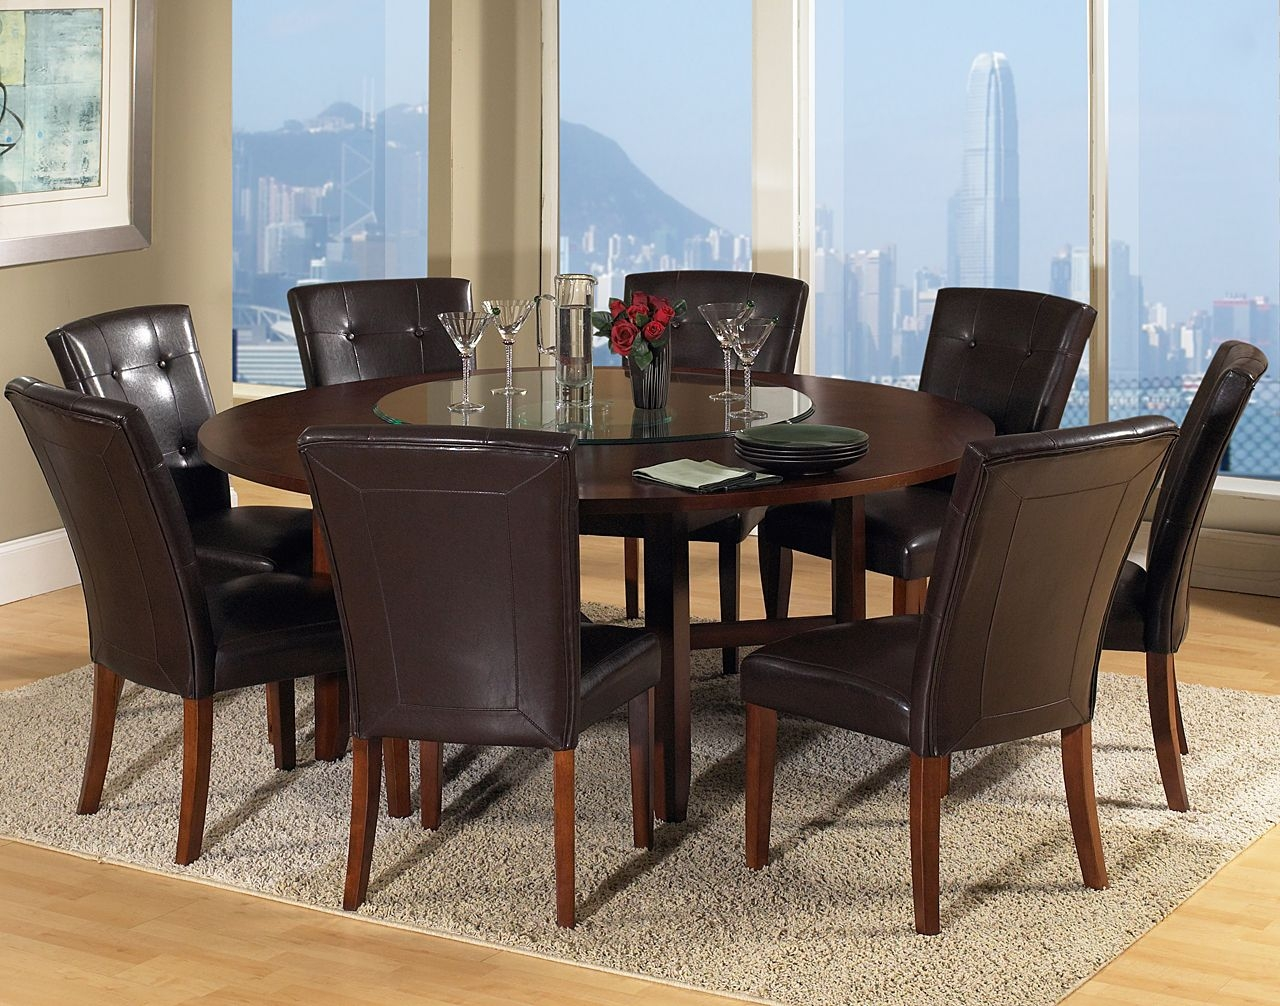 round dining table for 8 people foter rh foter com round kitchen table for 8 or more